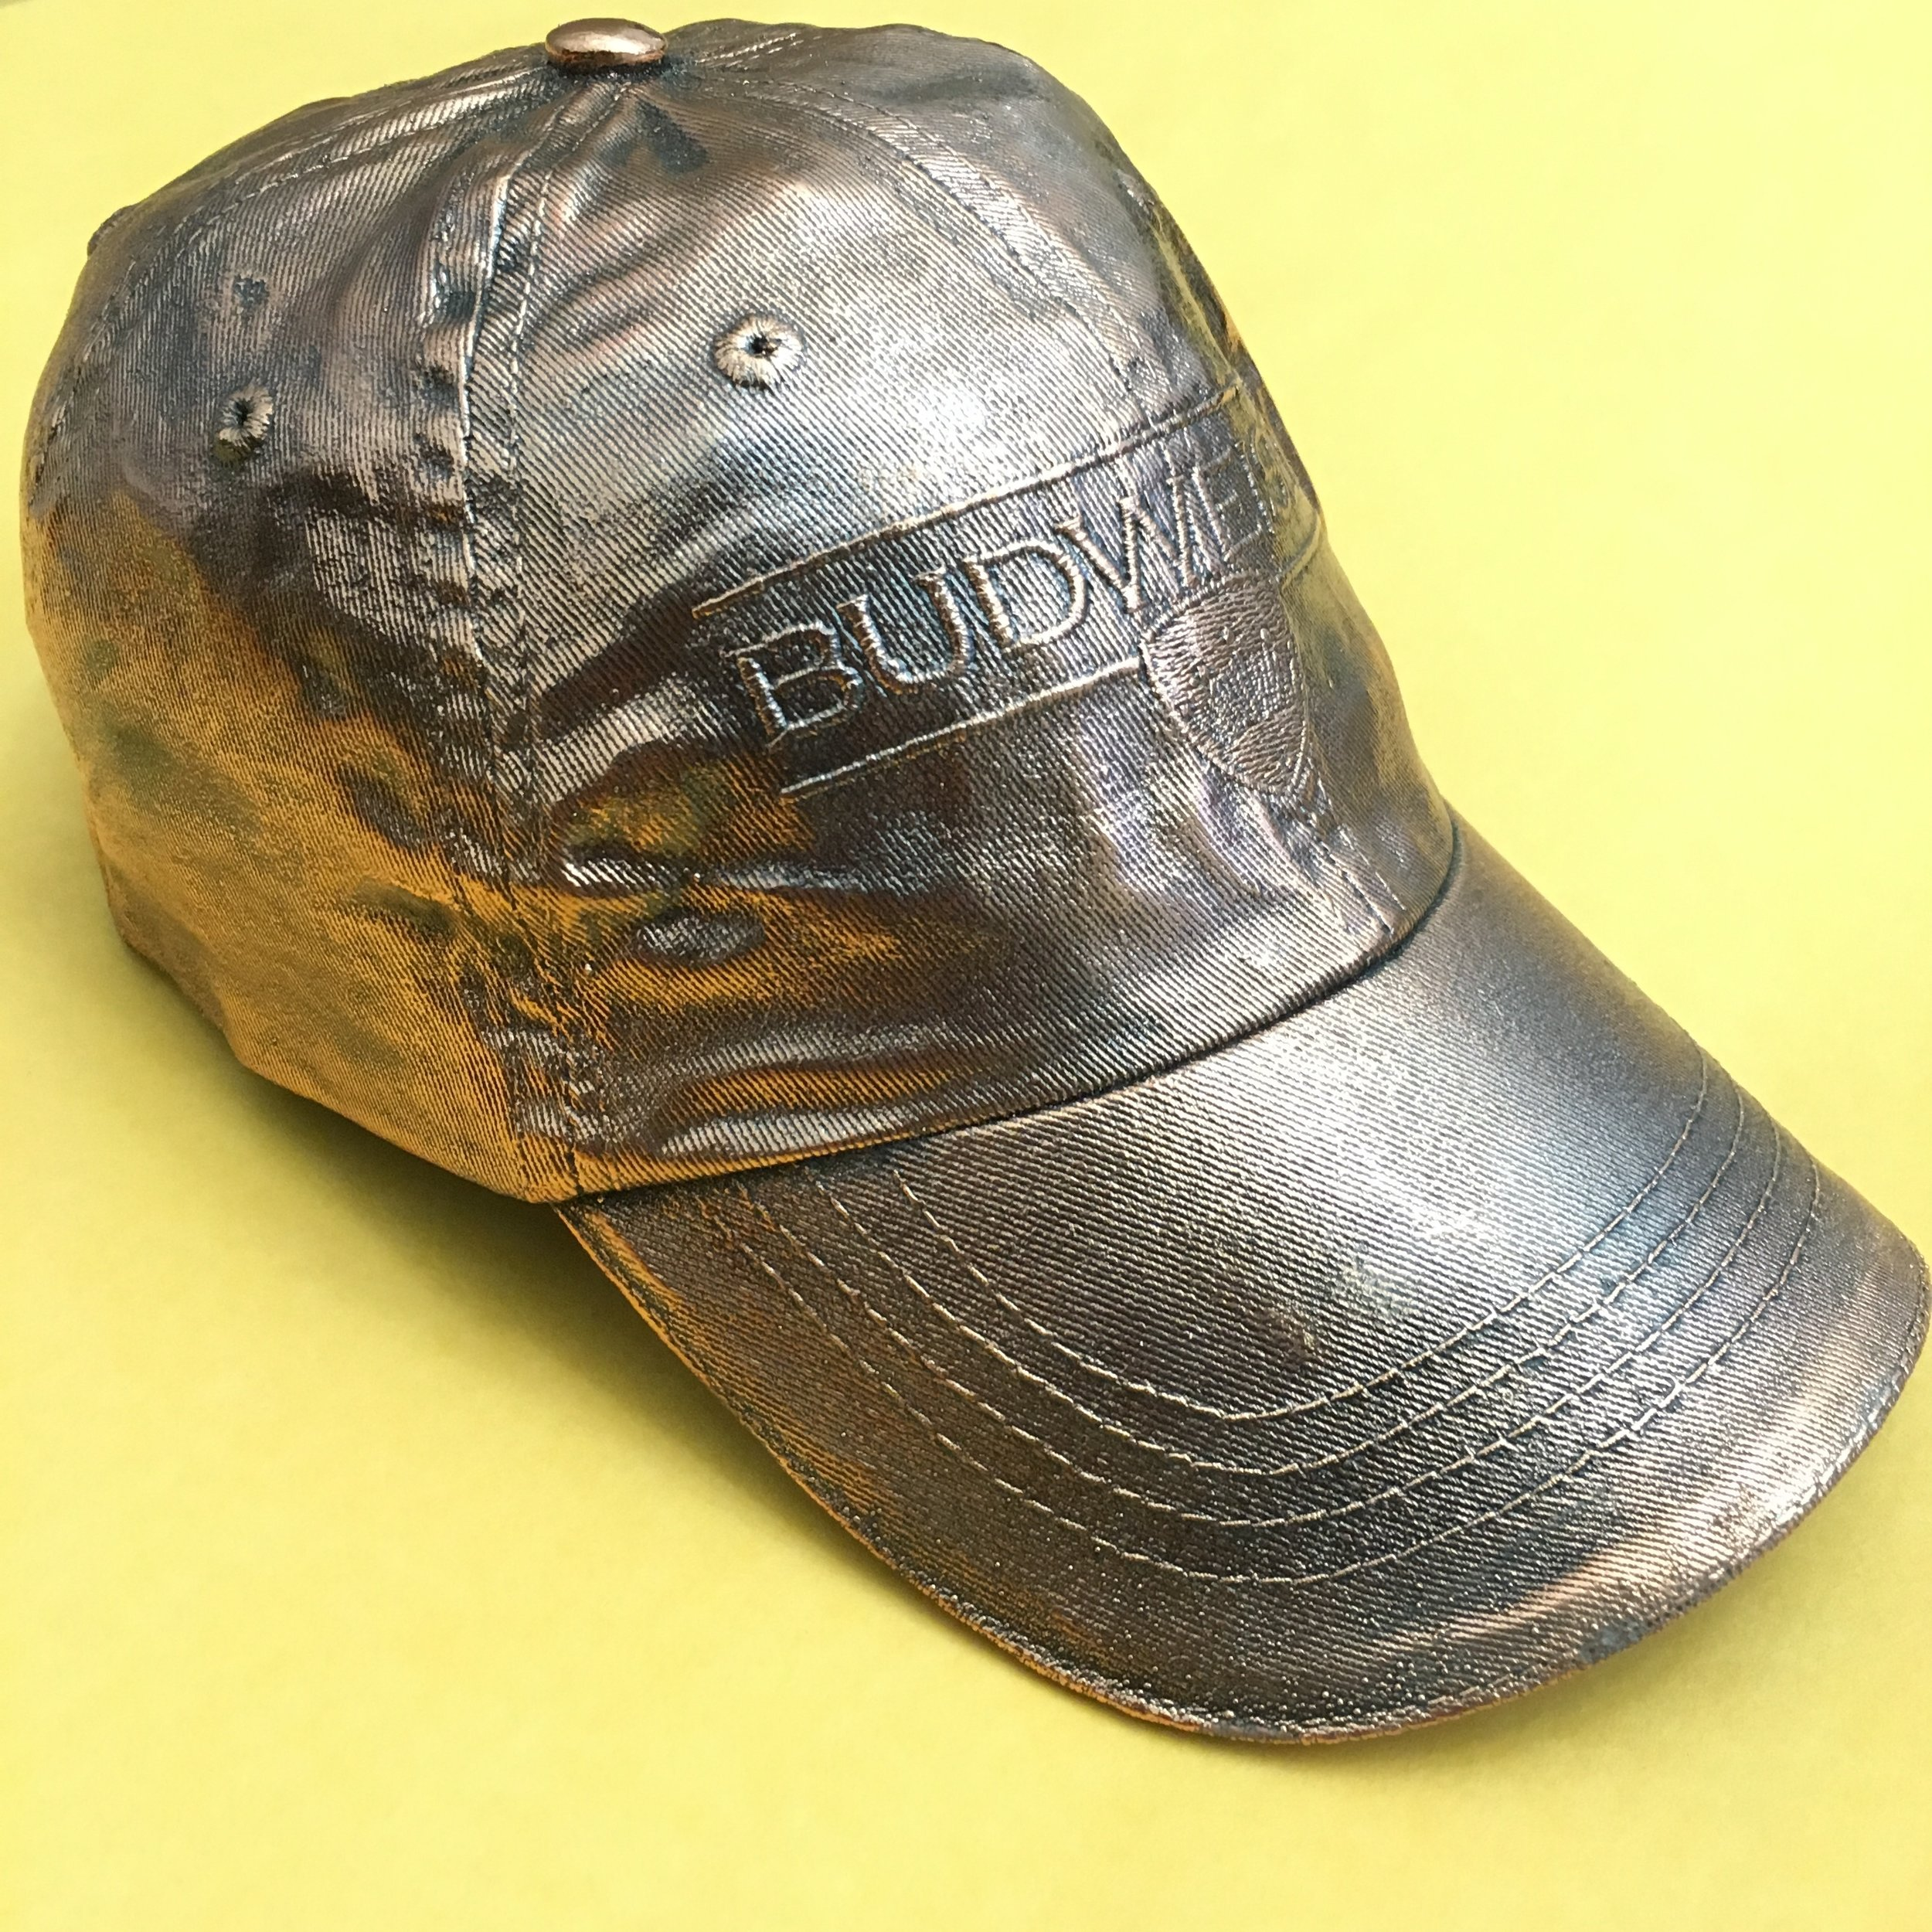 "Budweiser Cap, 2016, copper electroplated hat, 11"" x 8"" x 6"" inches"